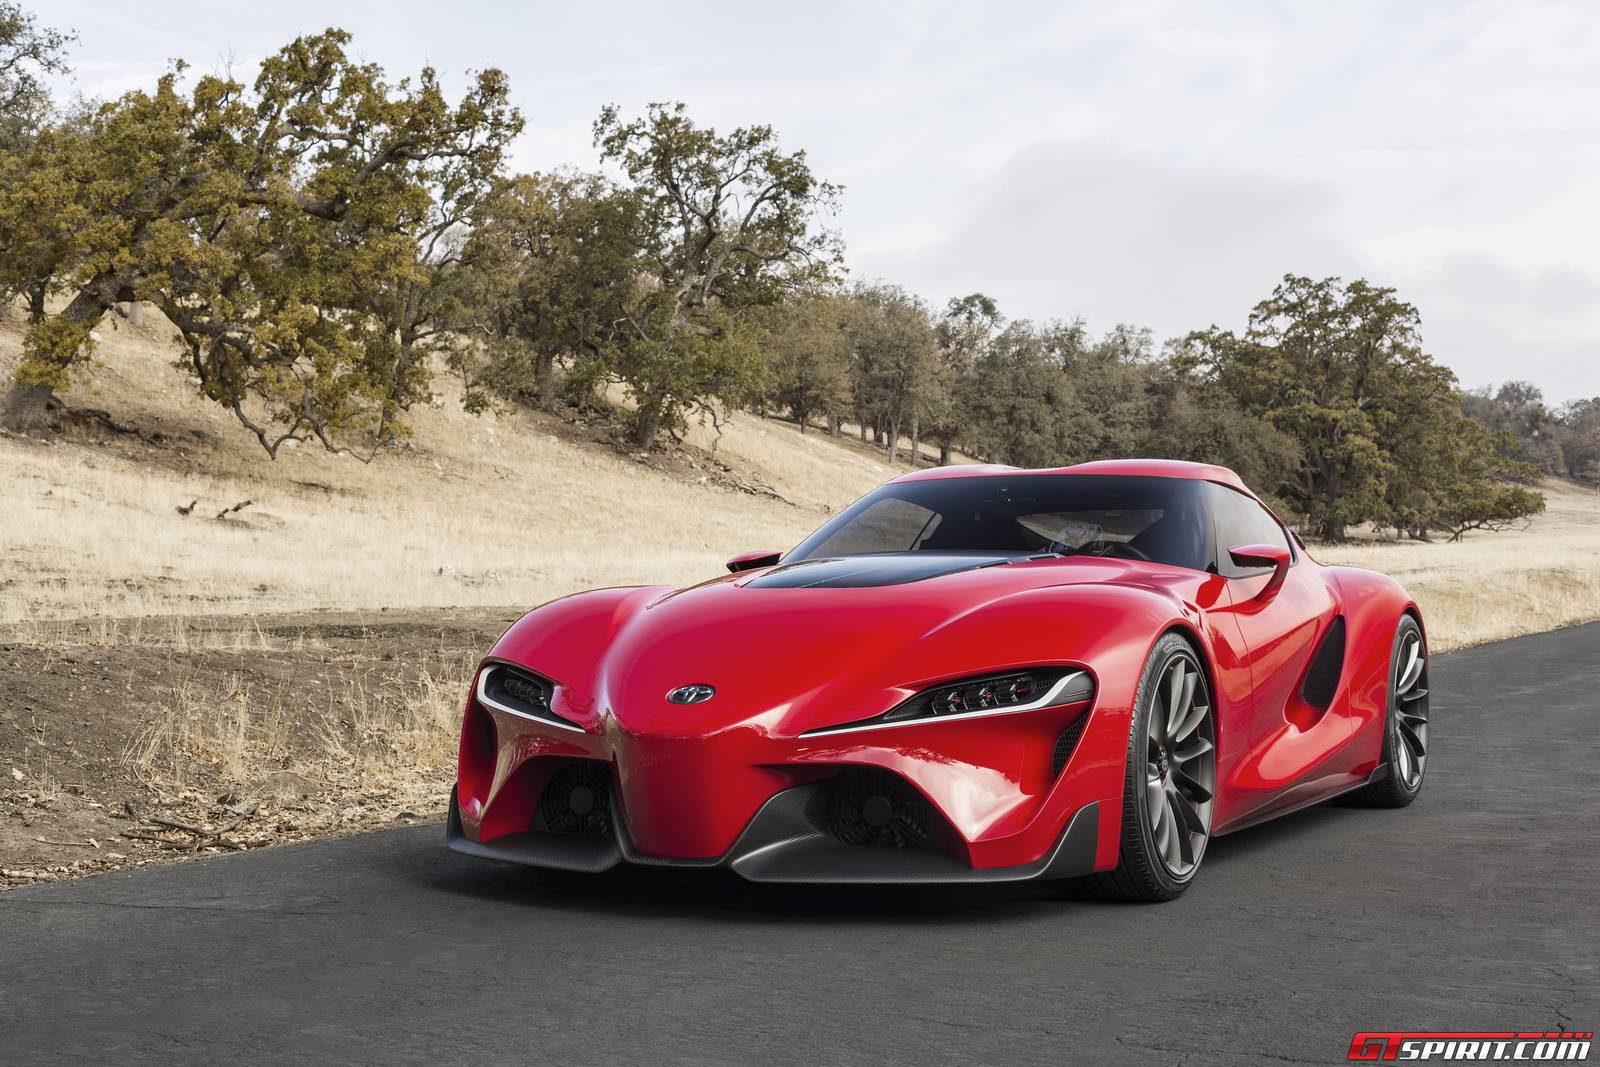 Toyota Ft 1 Said To Have Been Confirmed As Next Gen Toyota